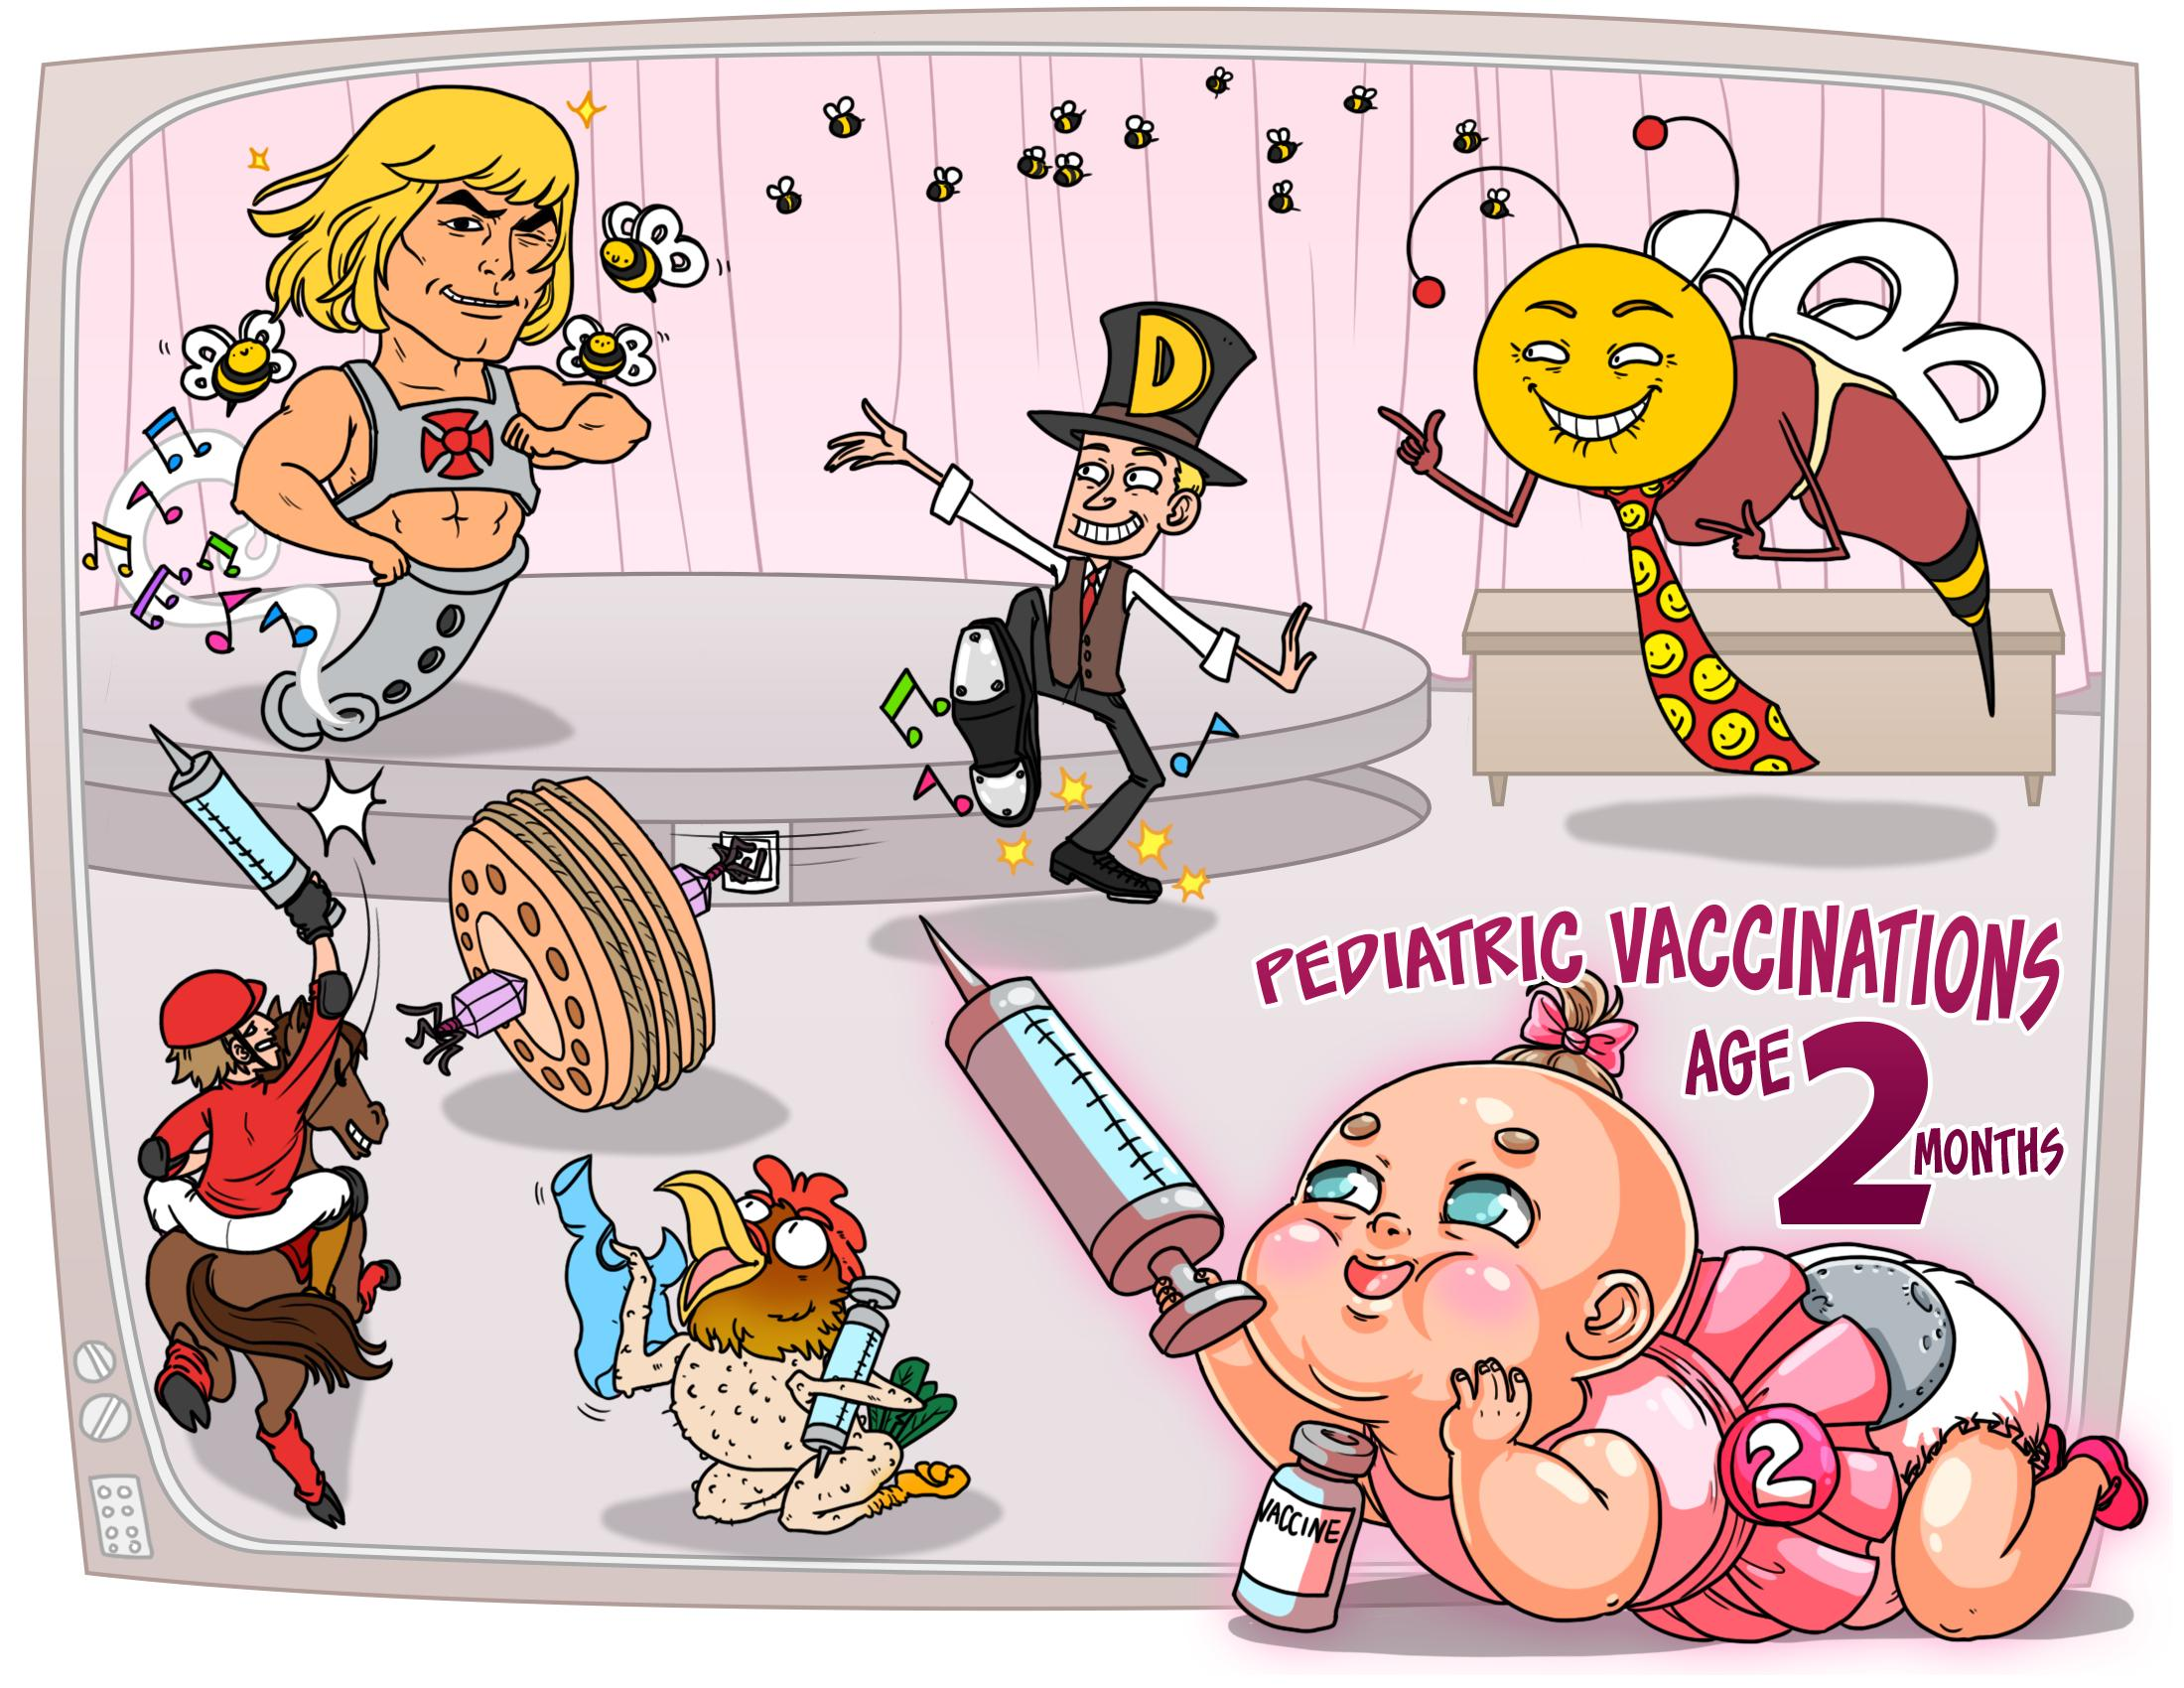 Pediatric Vaccinations - Age 2 Months